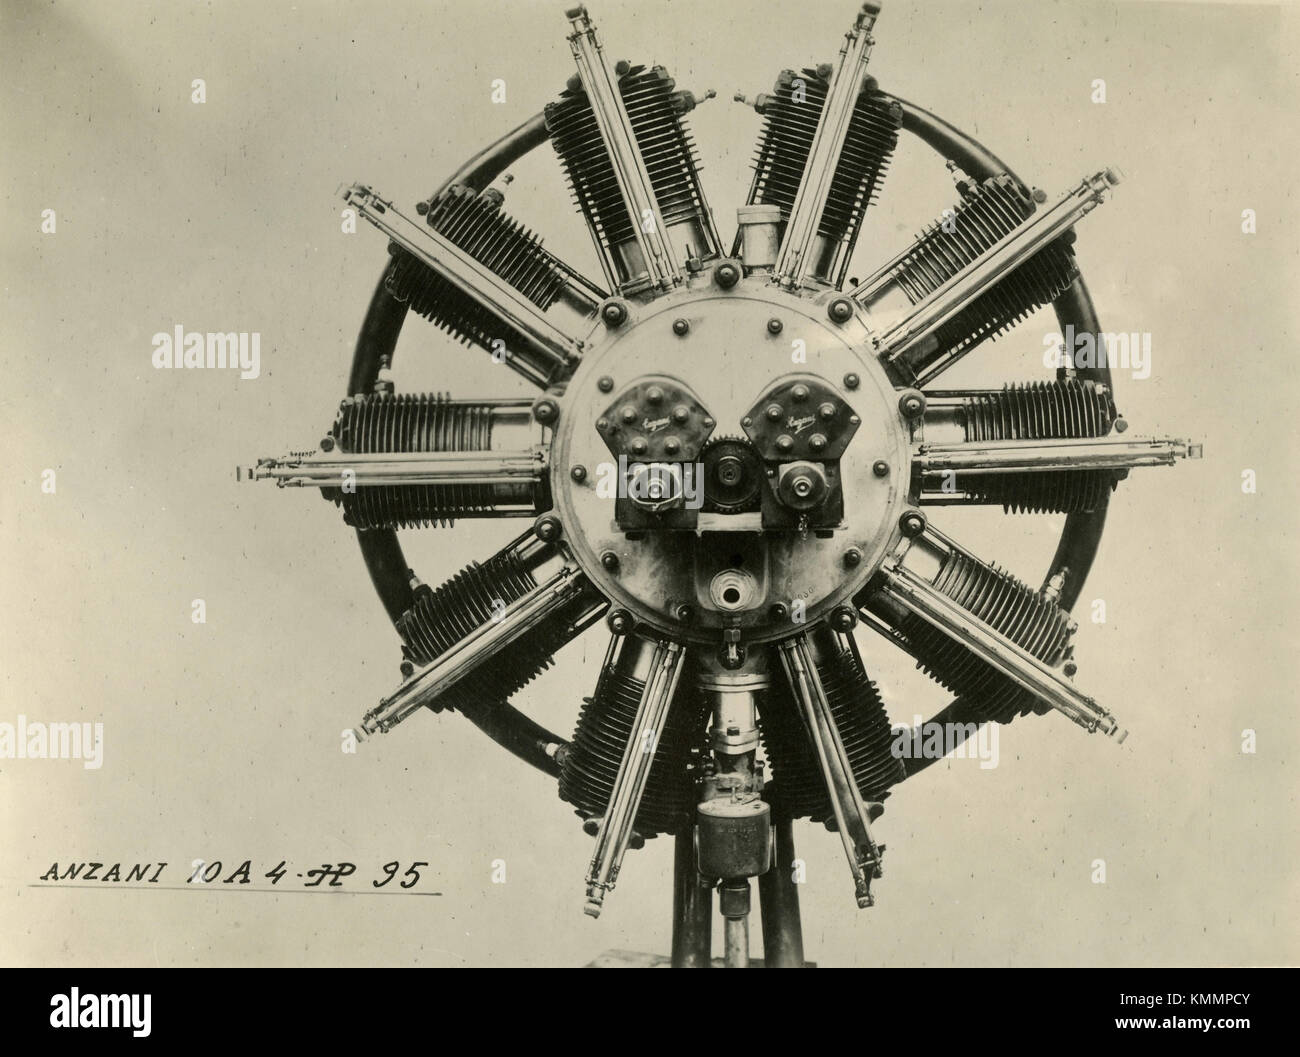 Anzani 10A 4 HP 35 aircraft radial engine 10 cylinders, Italy 1910s - Stock Image